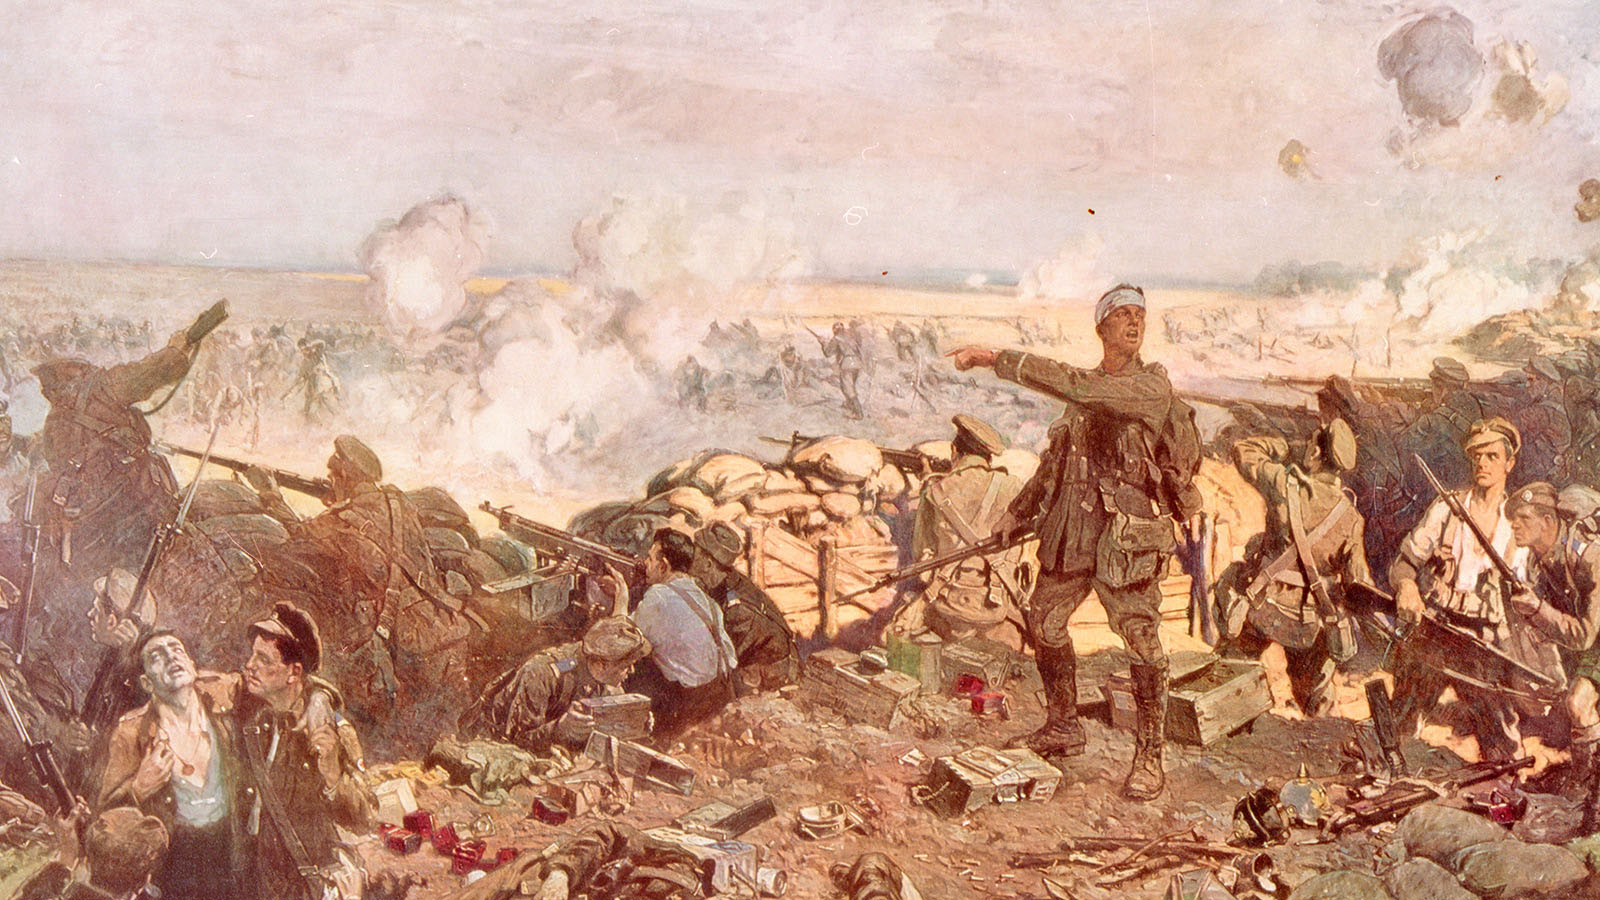 MIKAN 2837593: The Second Battle of Ypres. (Library and Archives Canada)